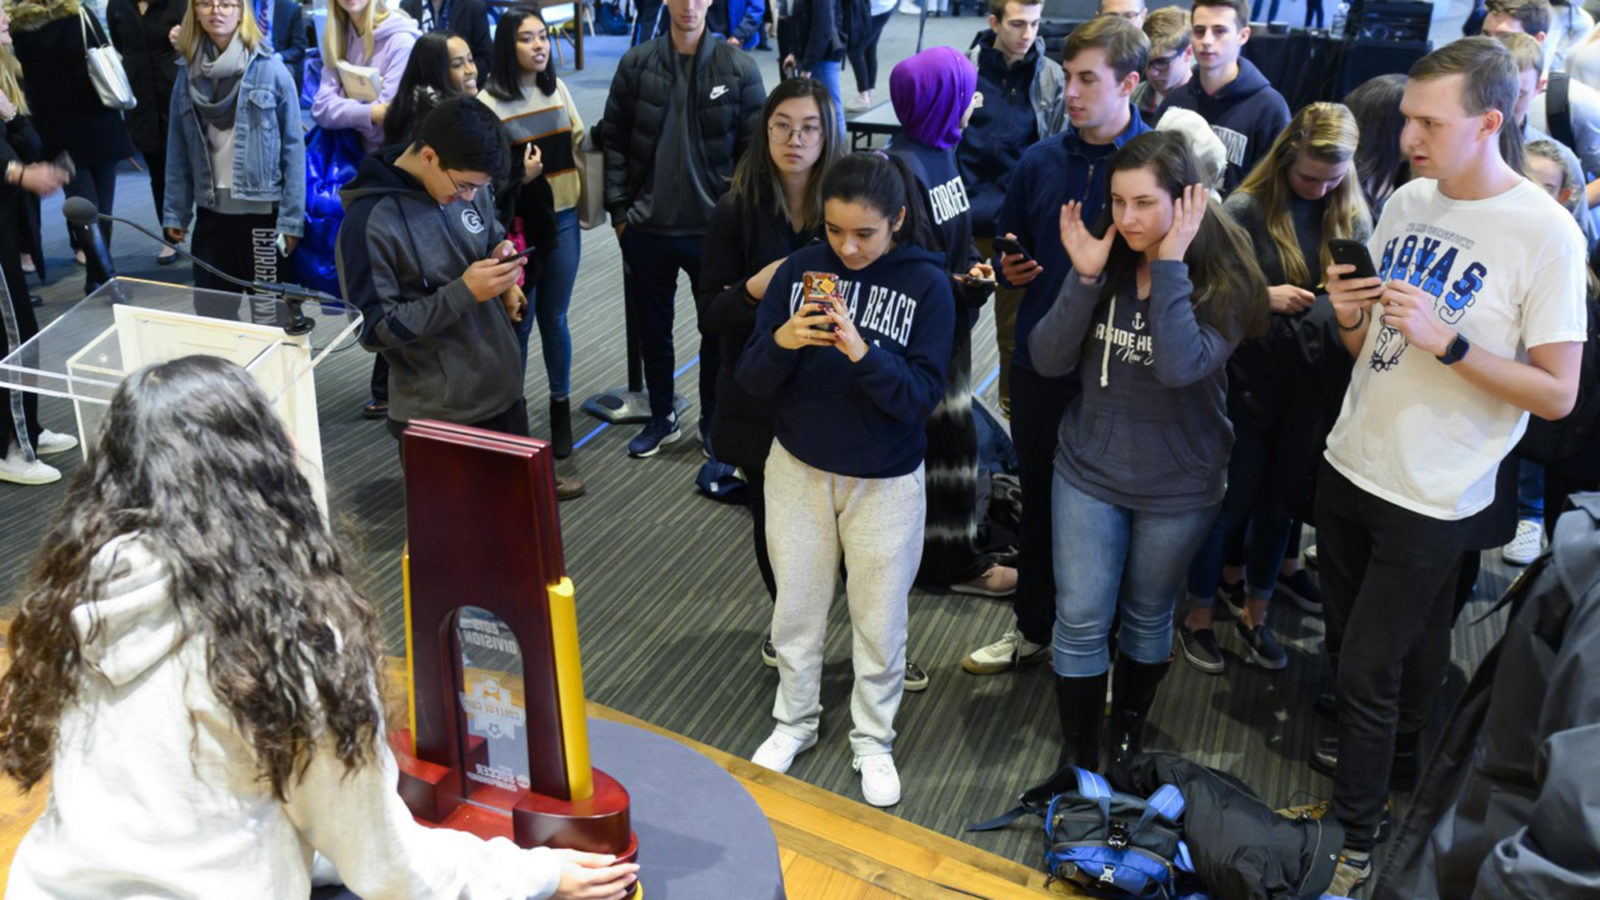 Georgetown students stand and take photos of the NCAA Championship trophy held by a woman on a stage